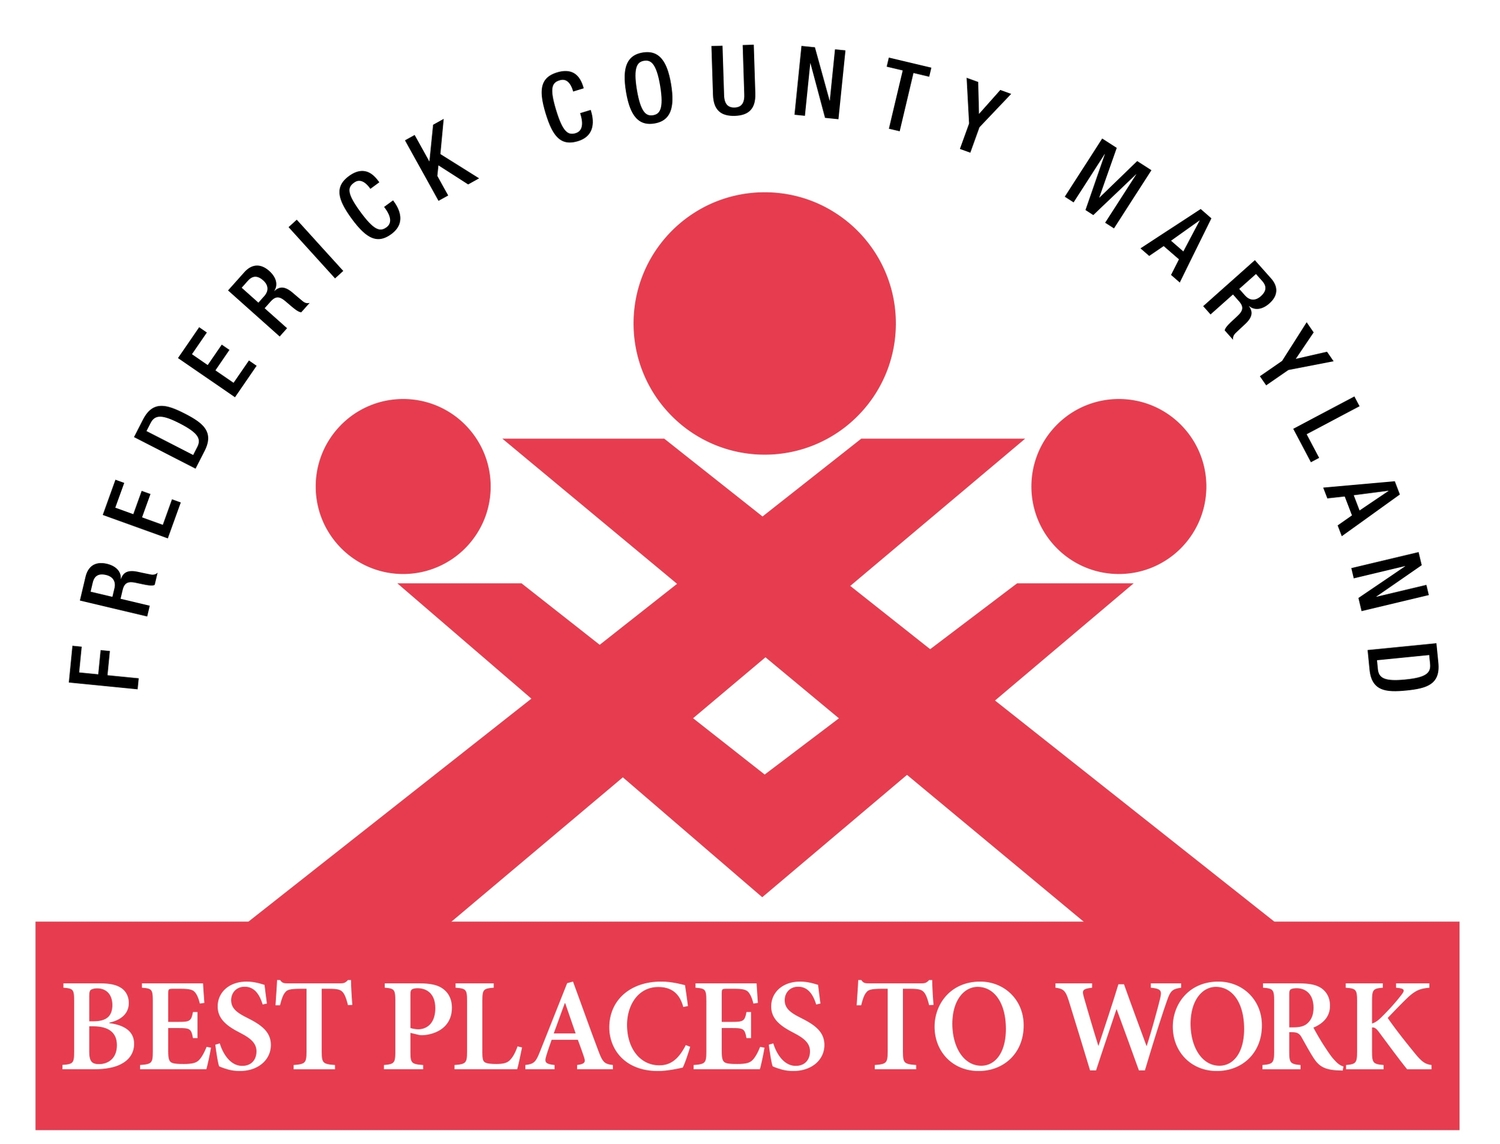 Frederick County Best Places to Work